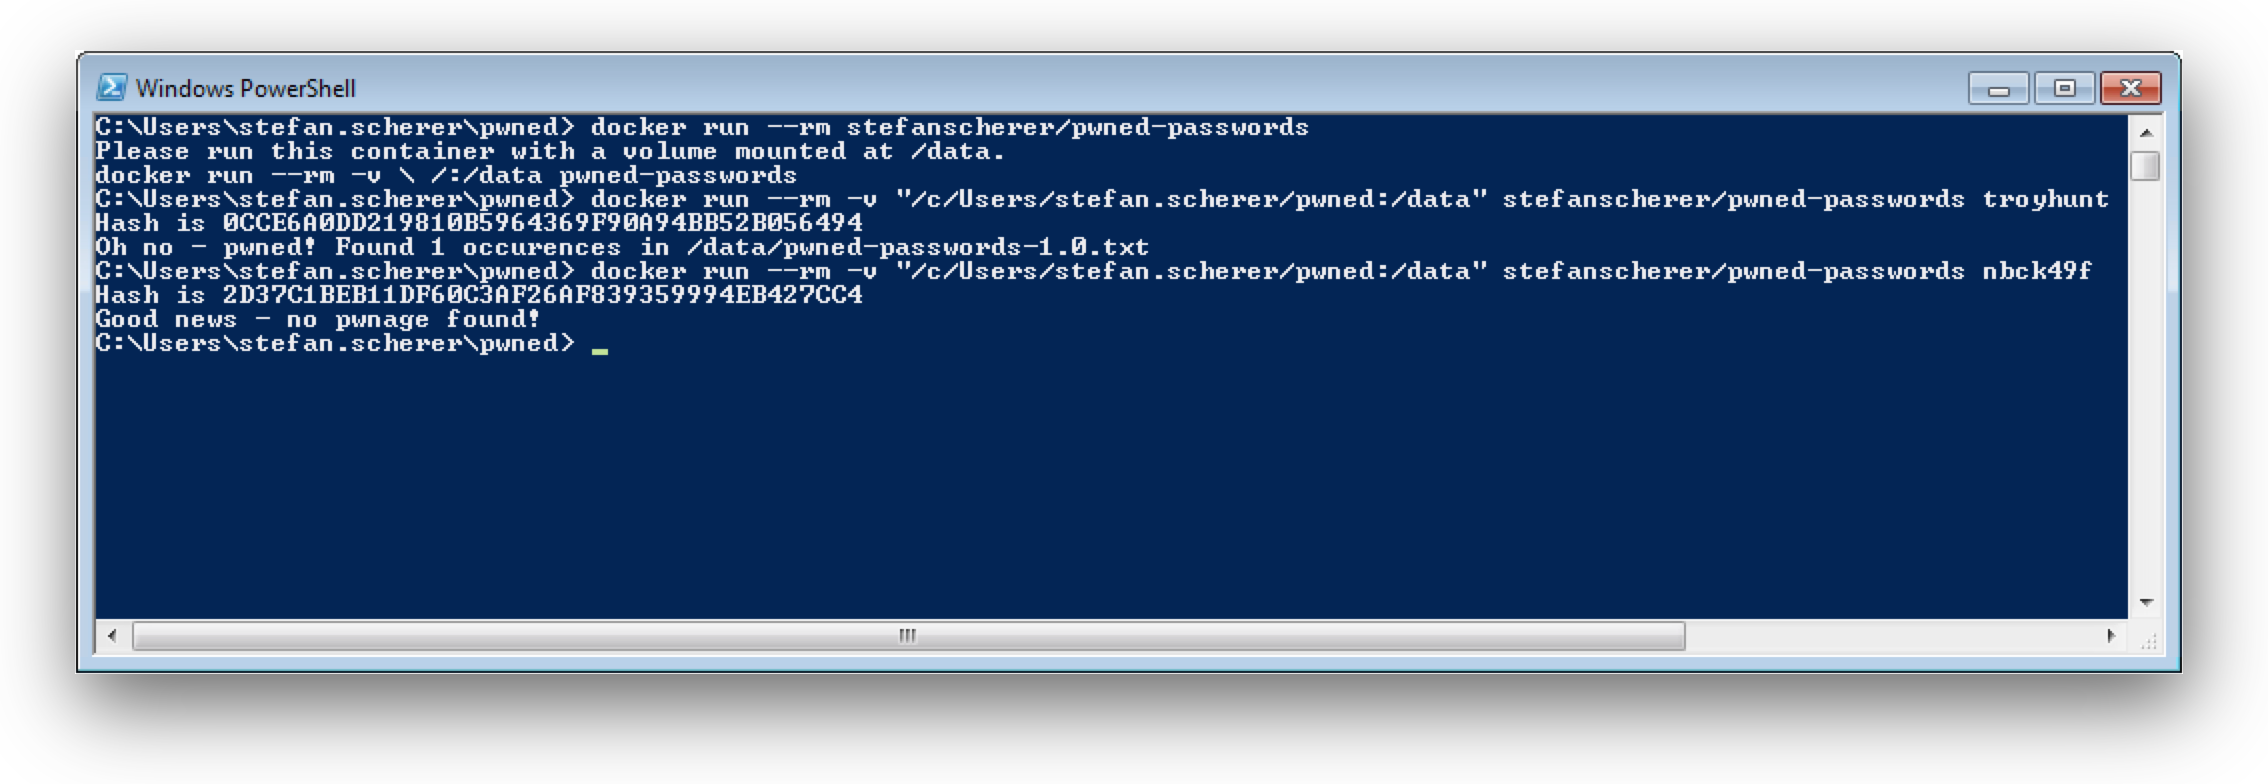 Windows 7 with pwned-passwords image